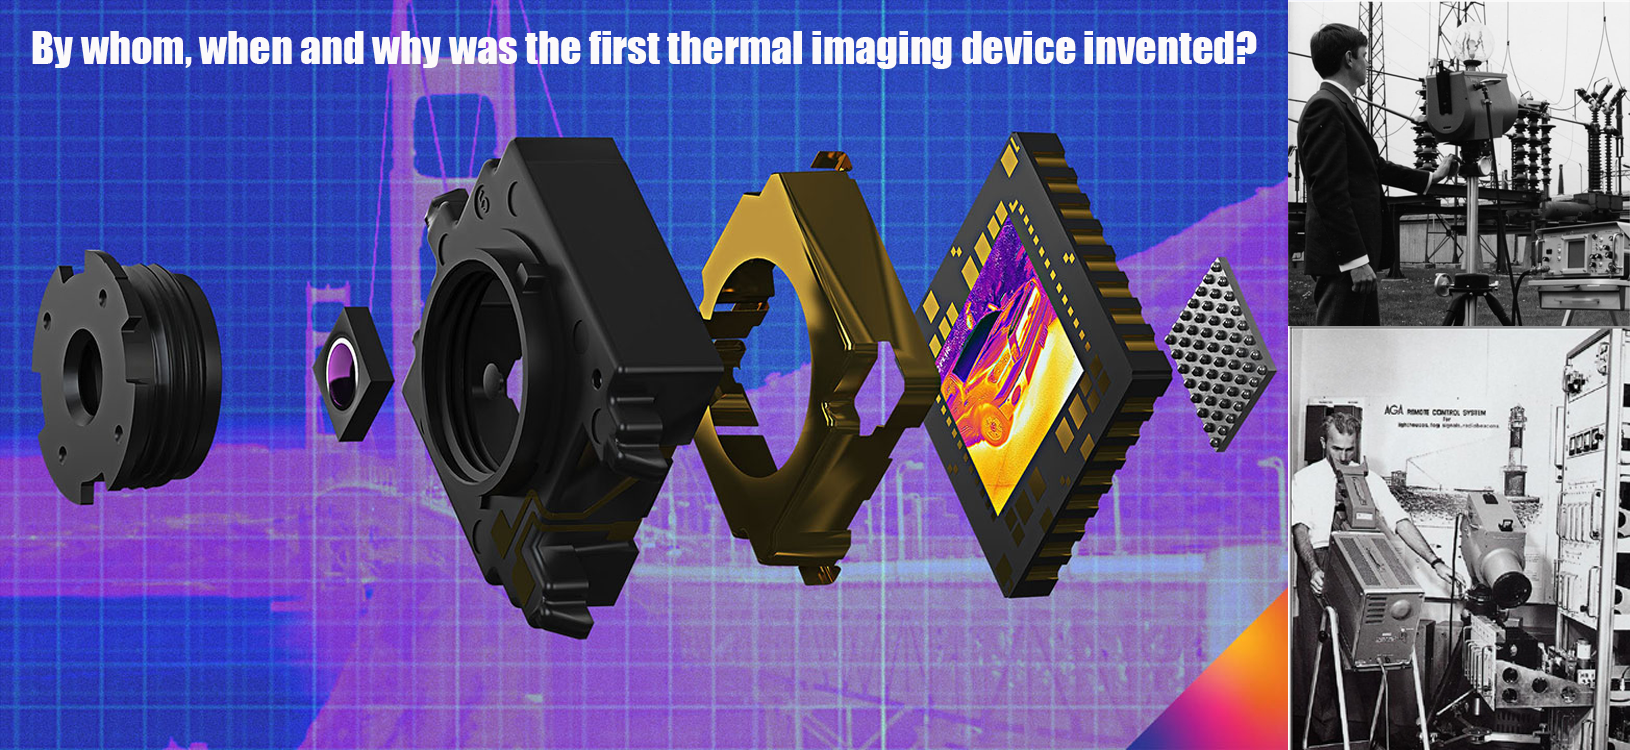 When Was Thermal Imaging Invented and Who